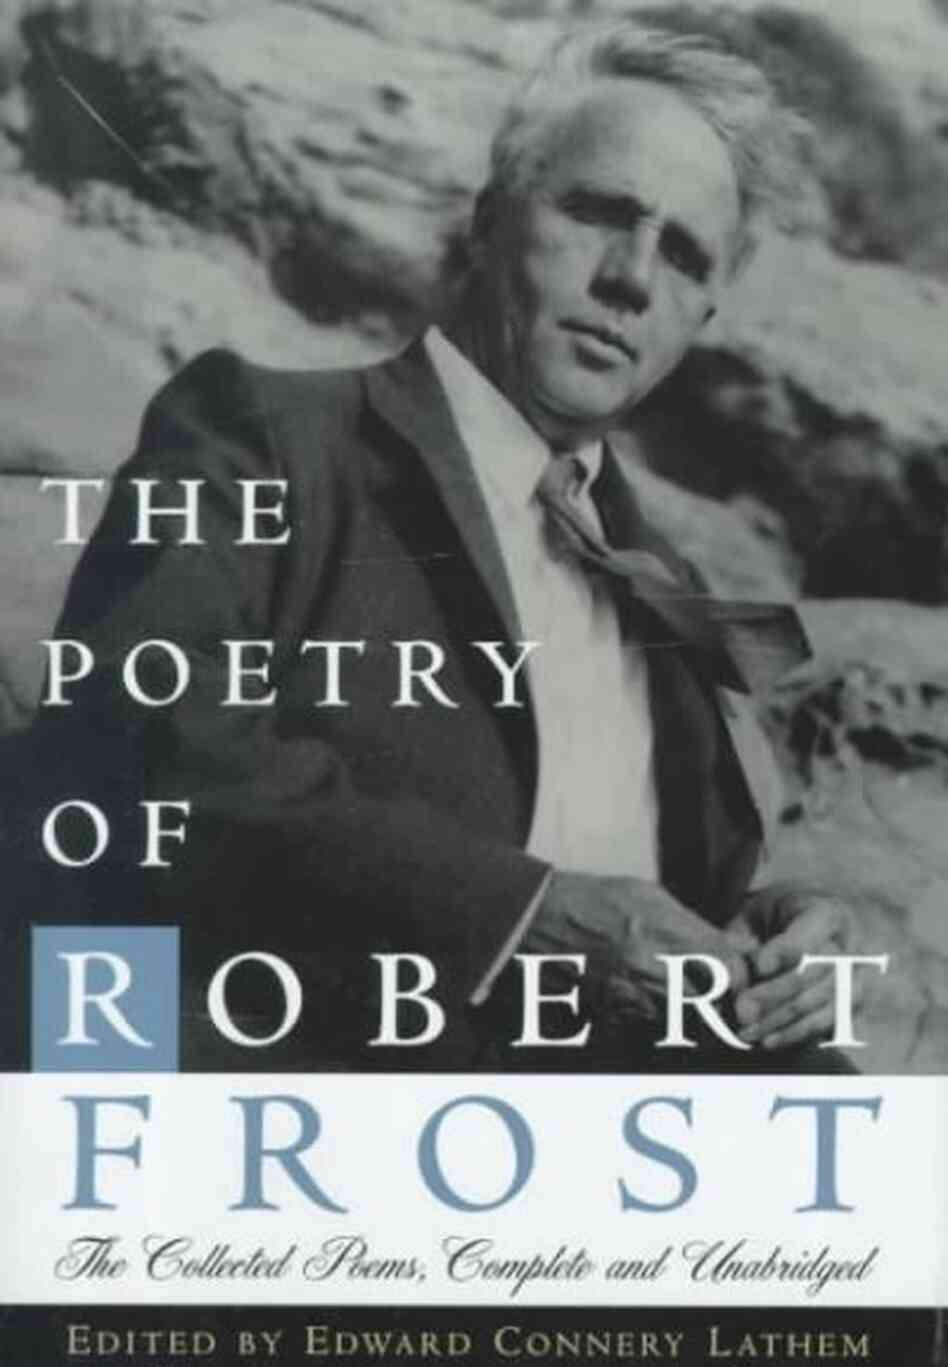 book review on robert frost